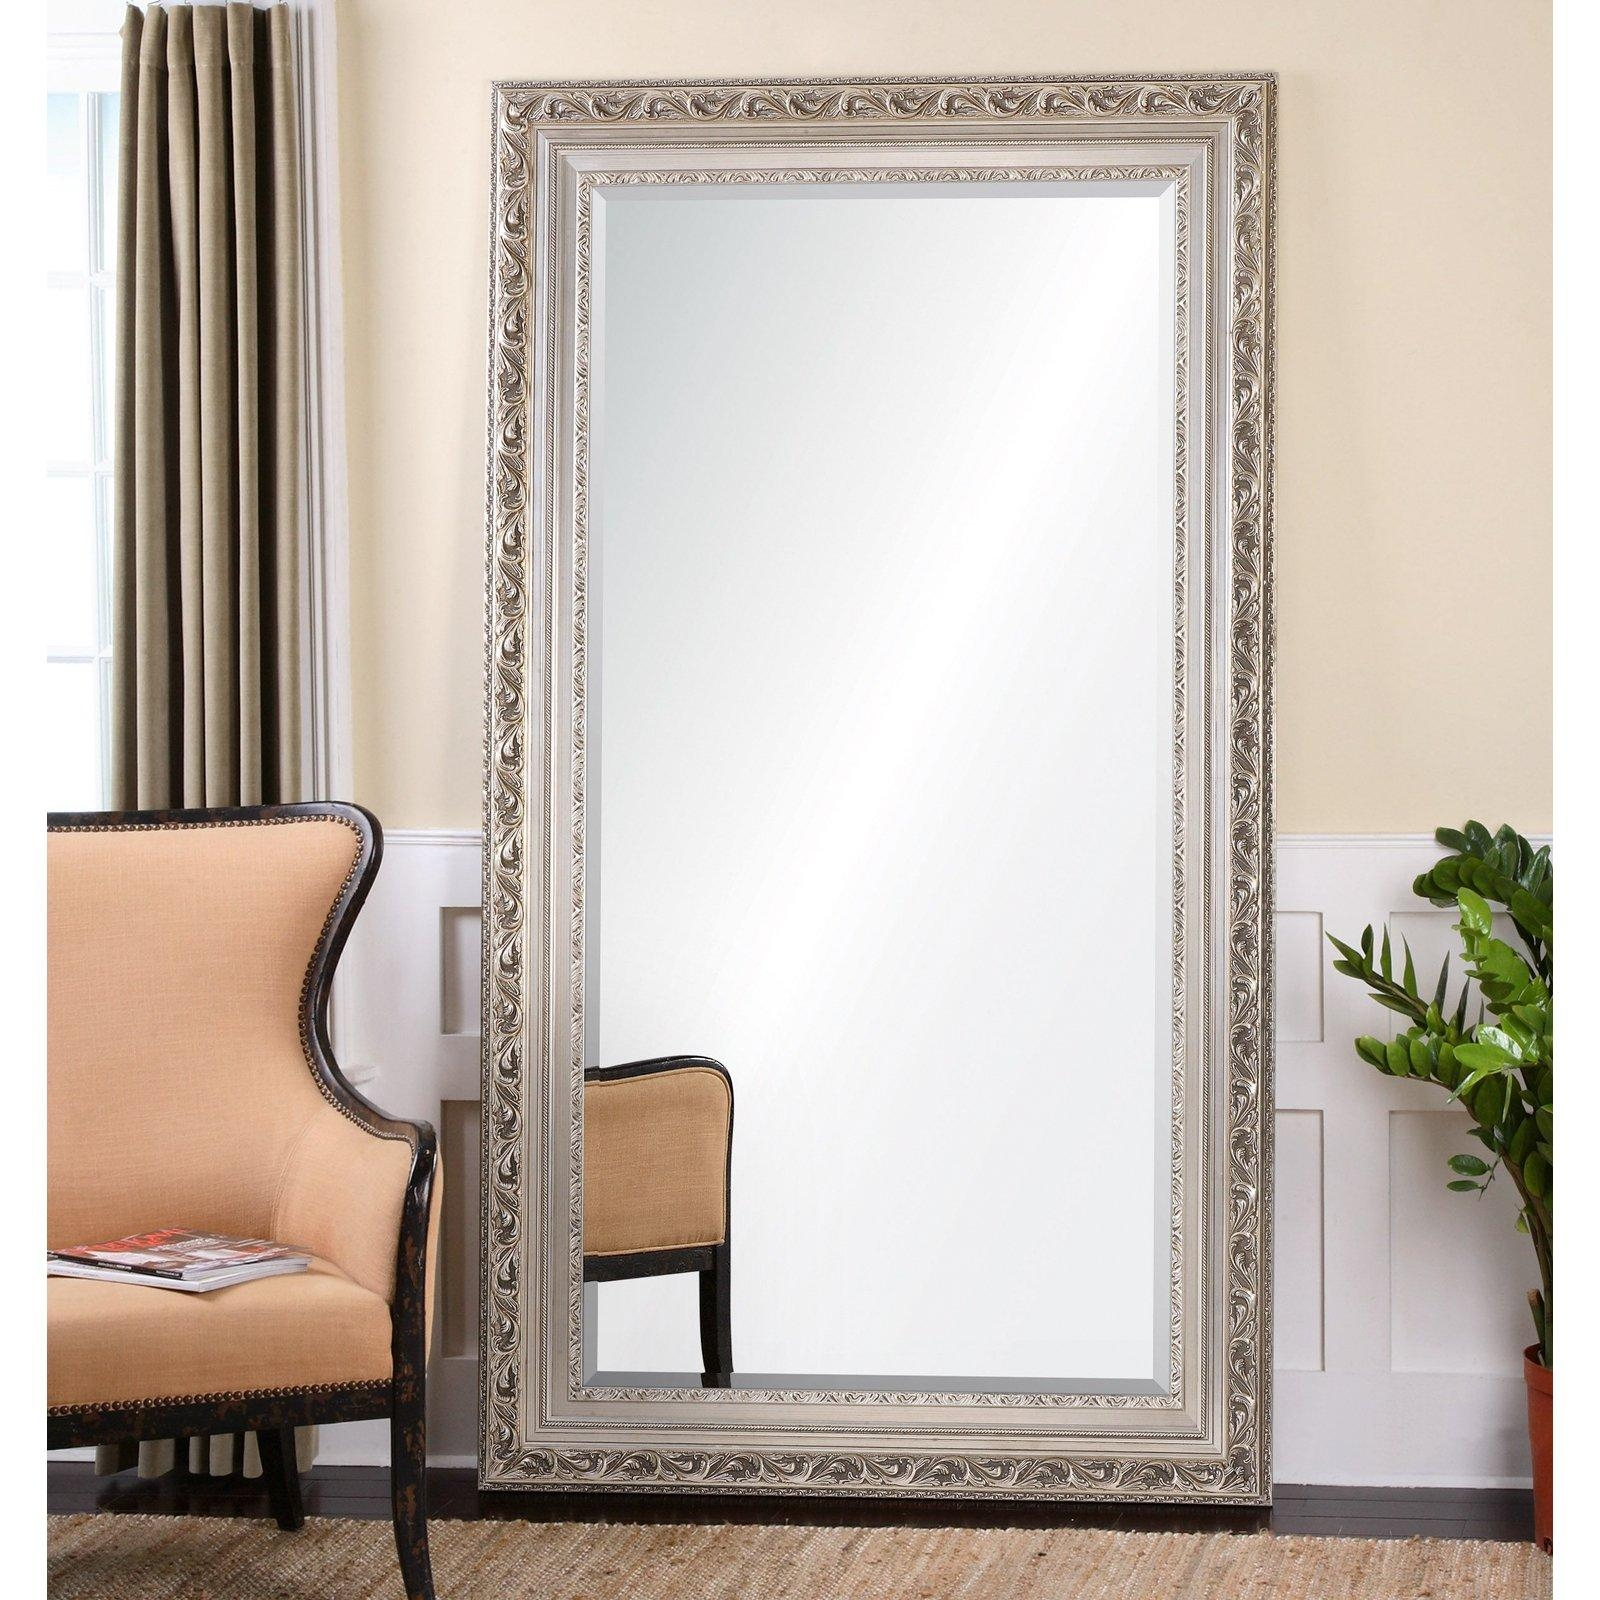 Large Leaning Floor Mirrors – Harpsounds (Image 18 of 20)